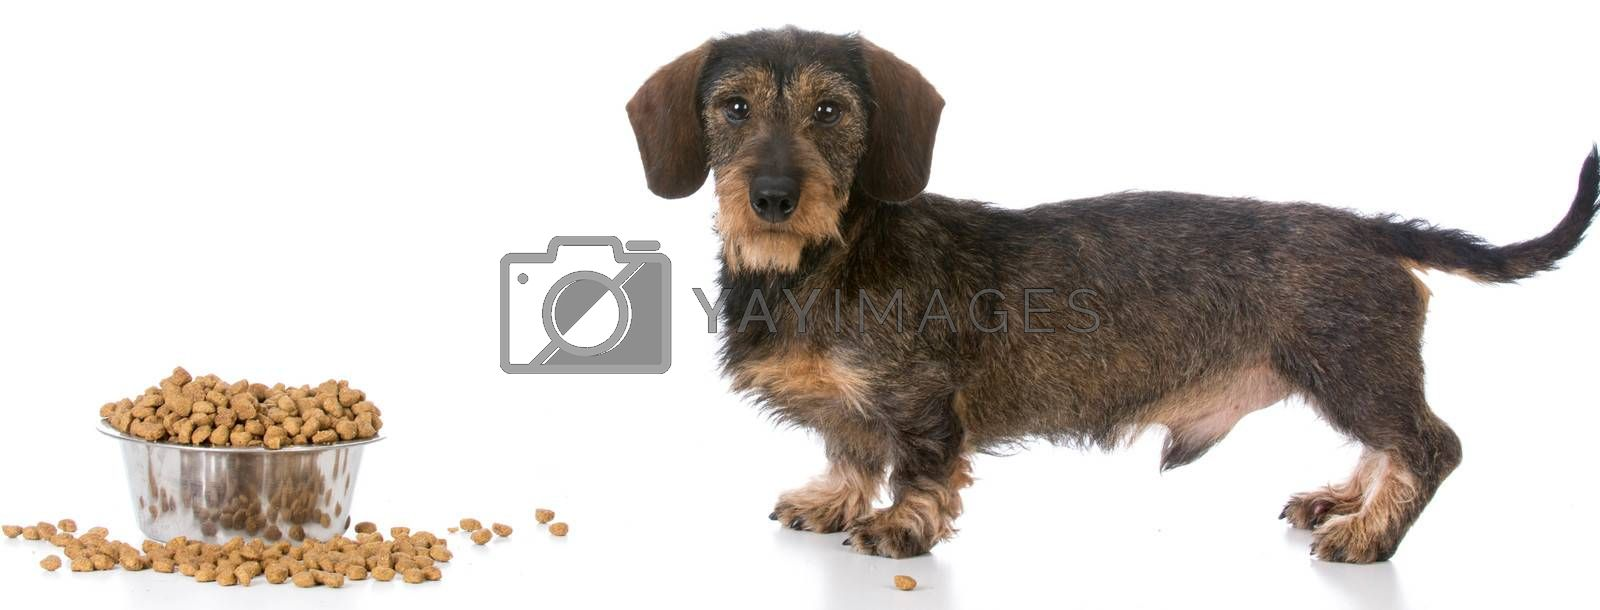 miniature wirehaired dachshund standing by a bowl of kibble on white background